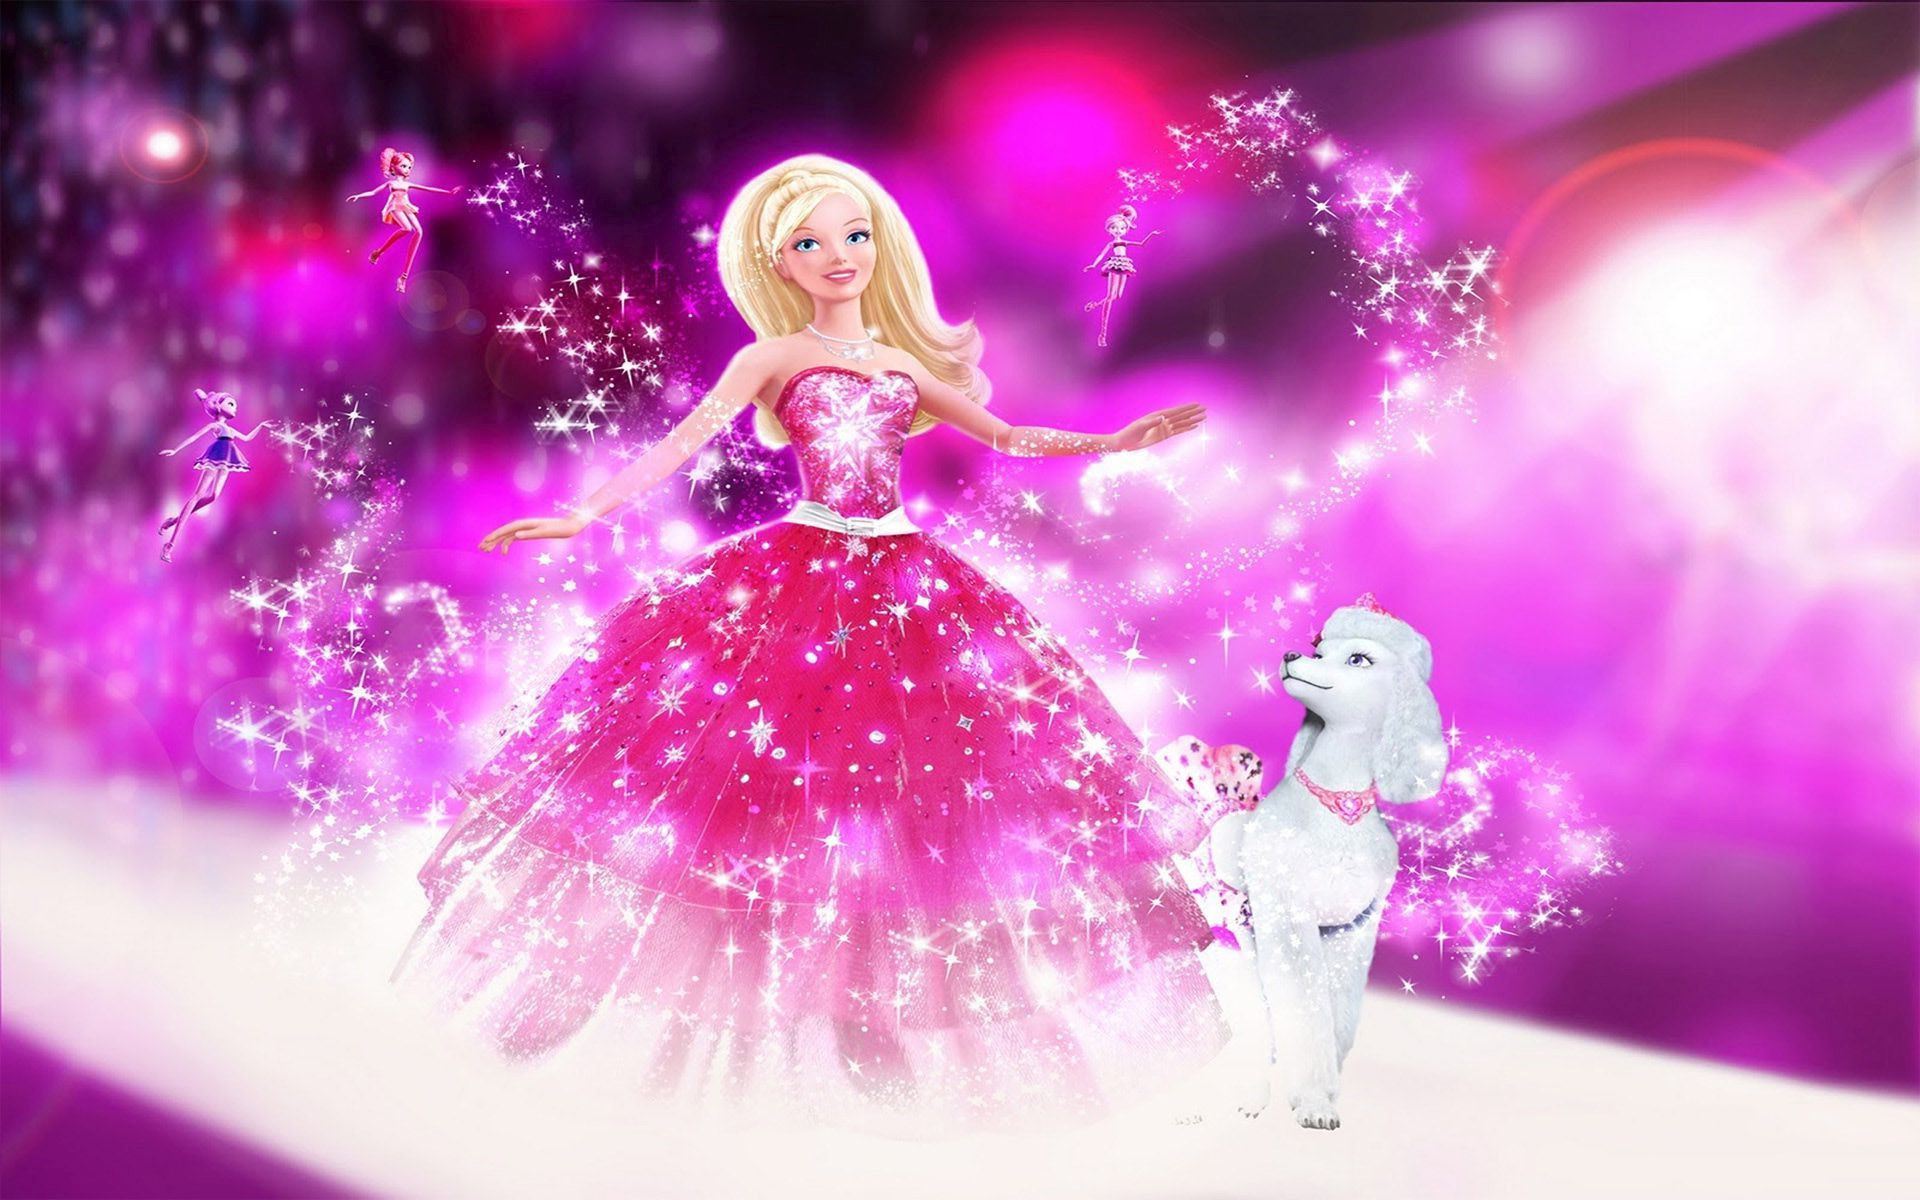 amazing cute barbie doll wallpaper photos for mobile